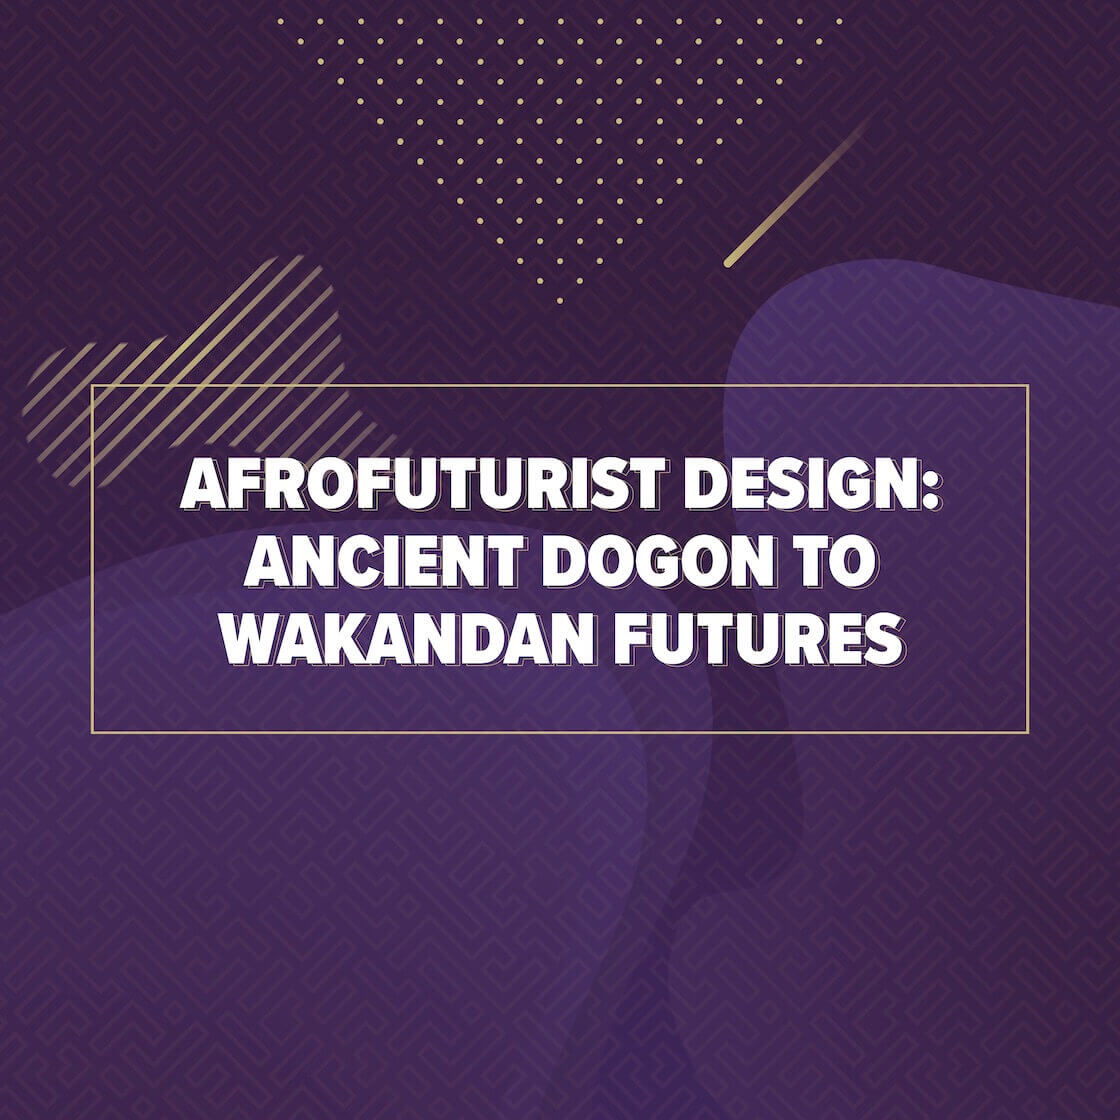 Afrofuturist Design: Ancient Dogon To Wakandan Futures